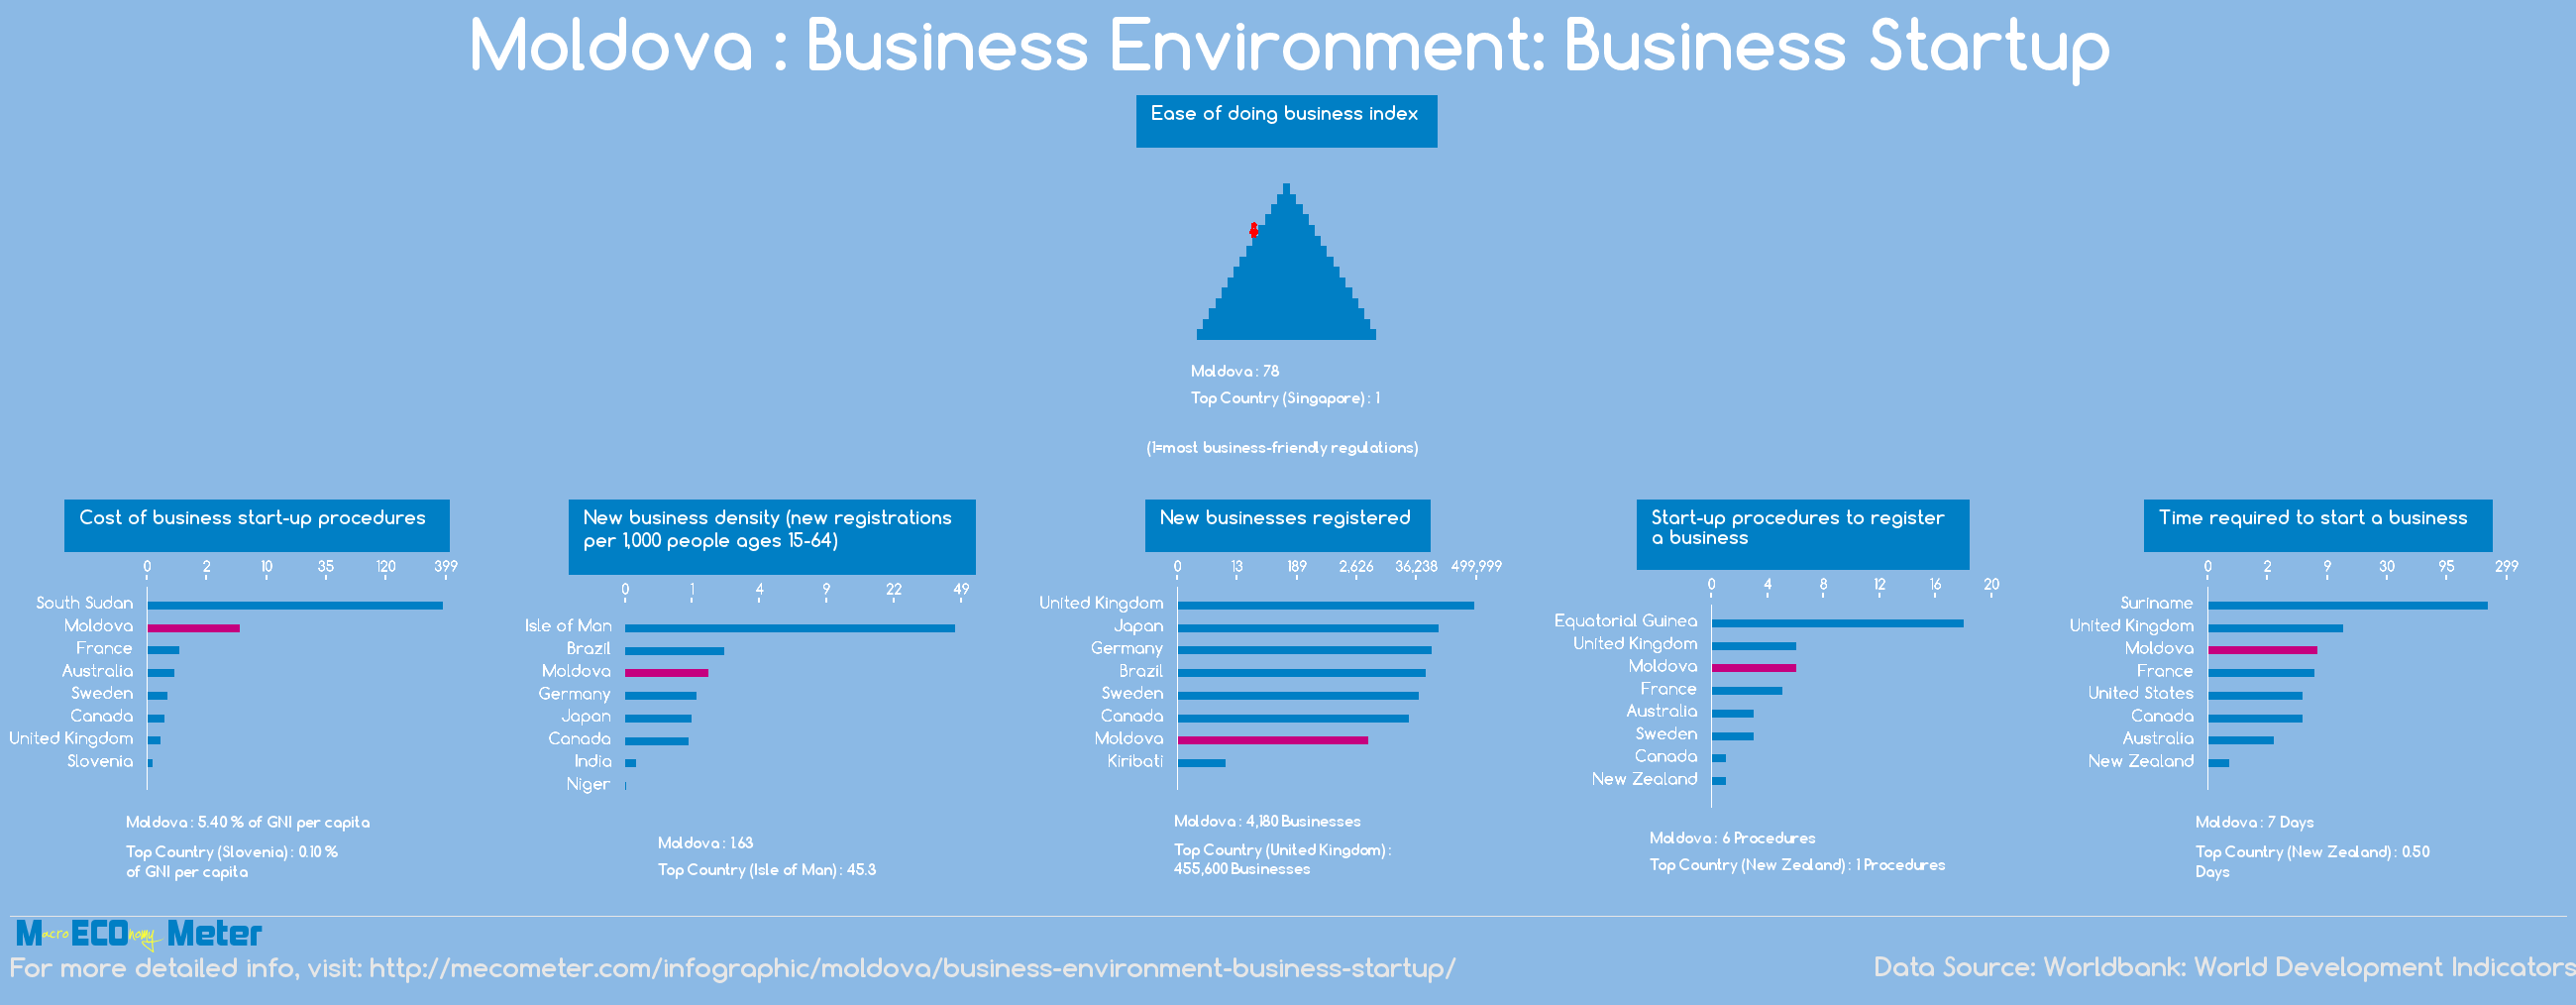 Moldova : Business Environment: Business Startup